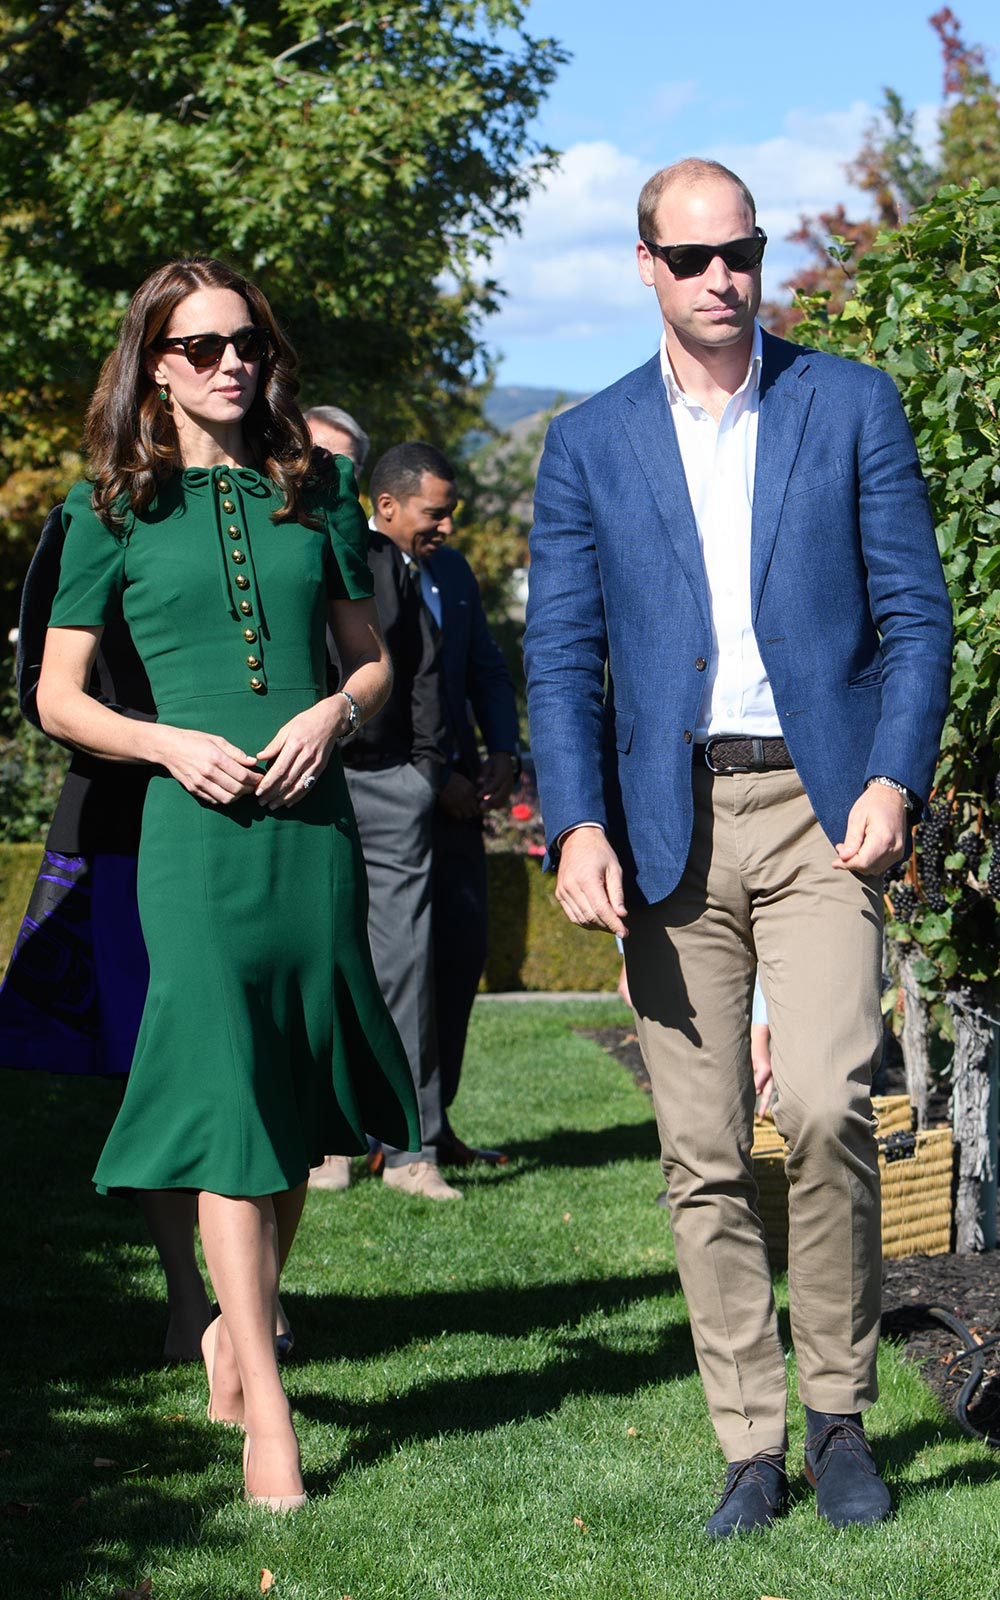 The Duke and Duchess of Cambridge walk along Mission Hill Winery in Canada